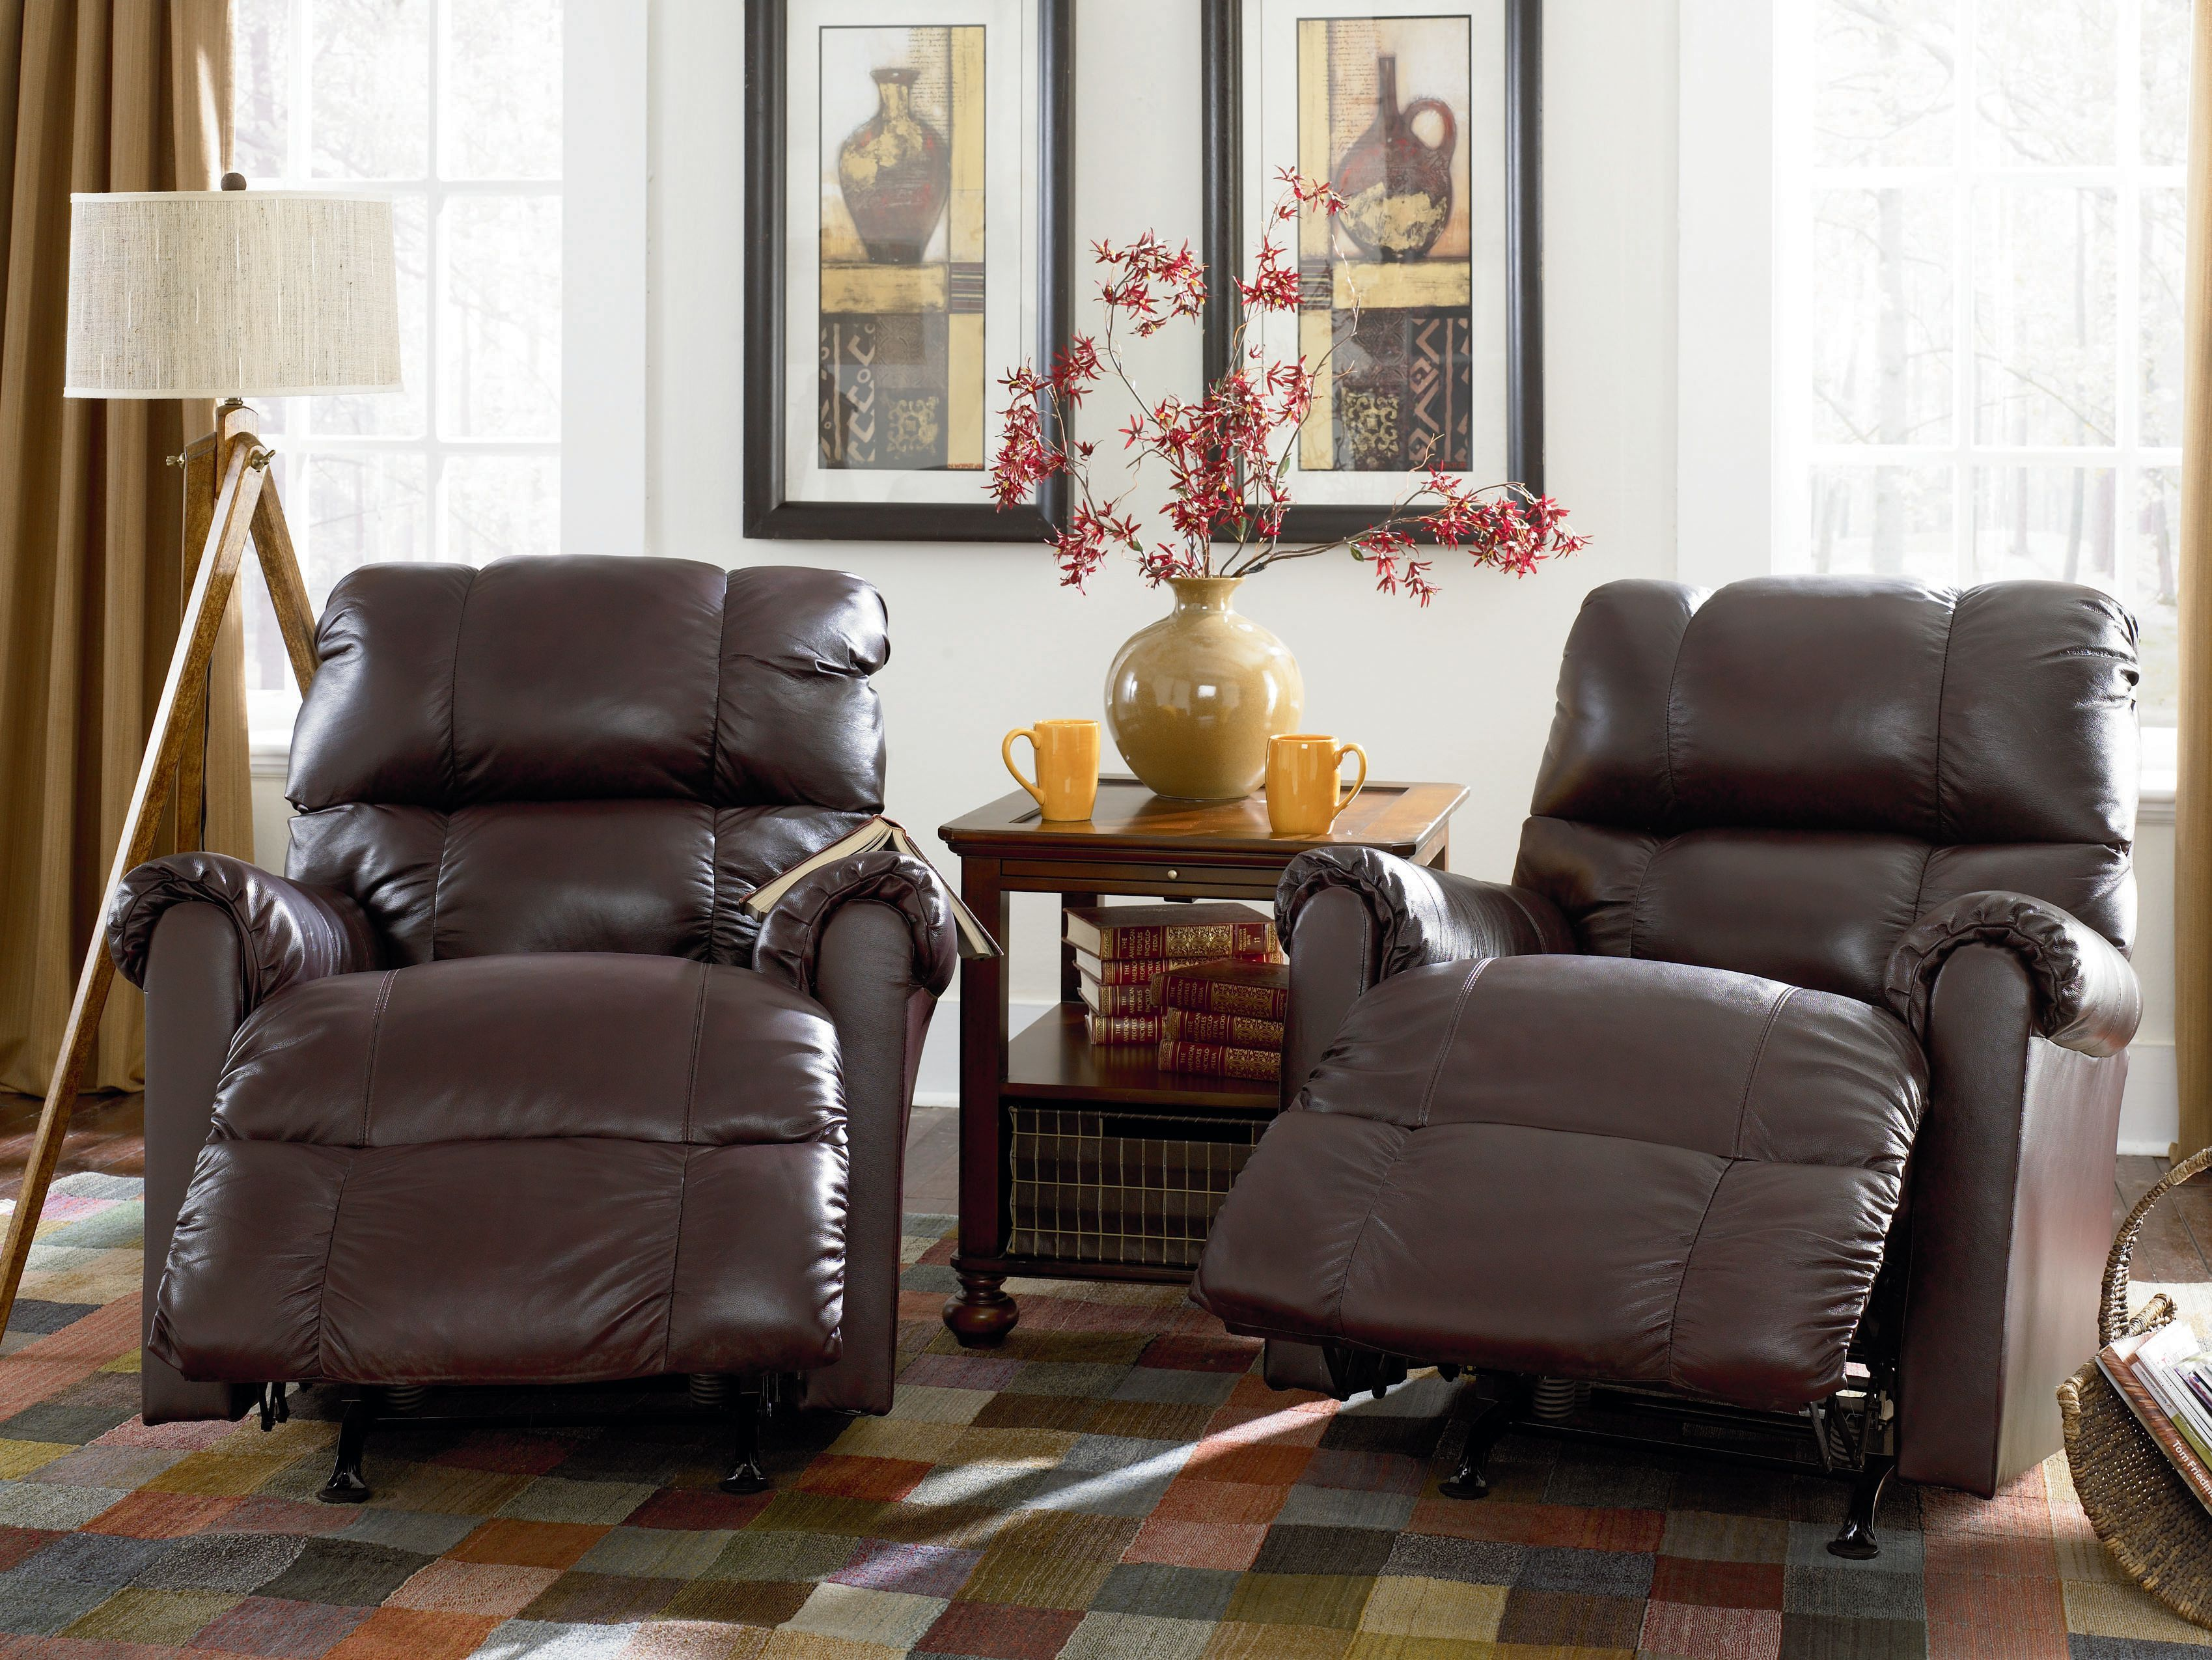 Great Deals on Recliner Sales in Augusta, Charleston, & Savannah